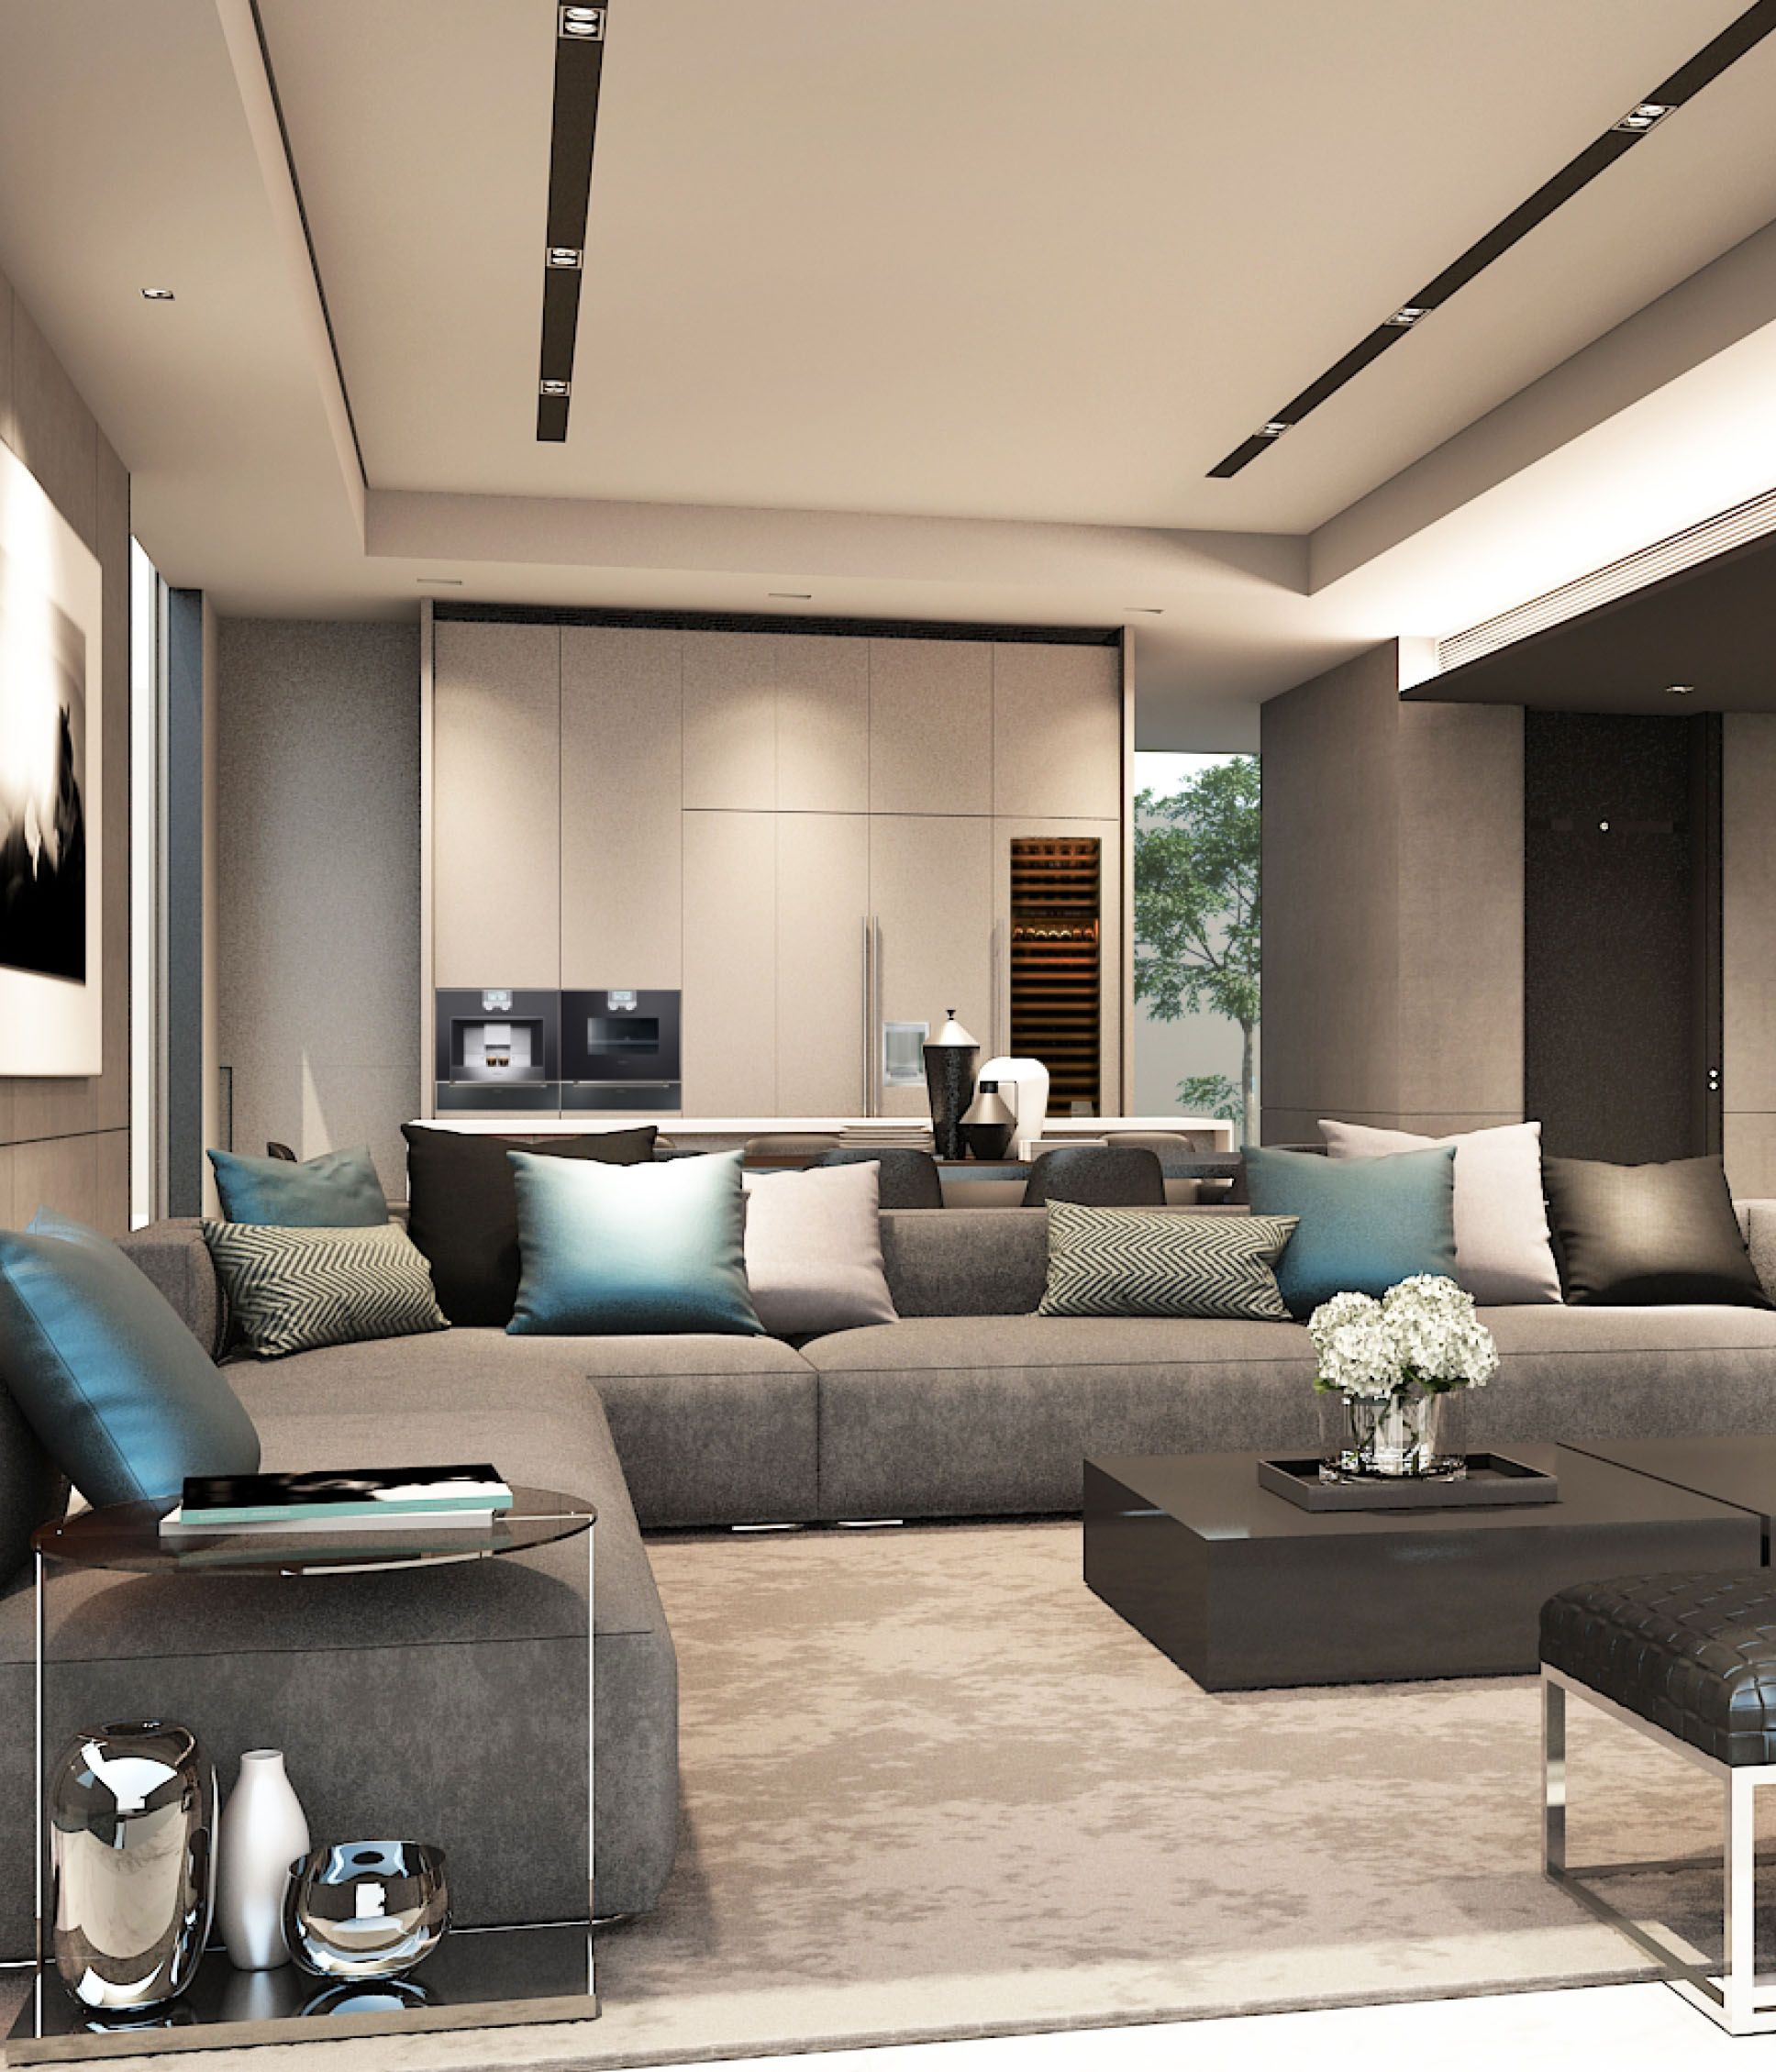 Scda mixed use development sanya china show villa type 1 lounge living area